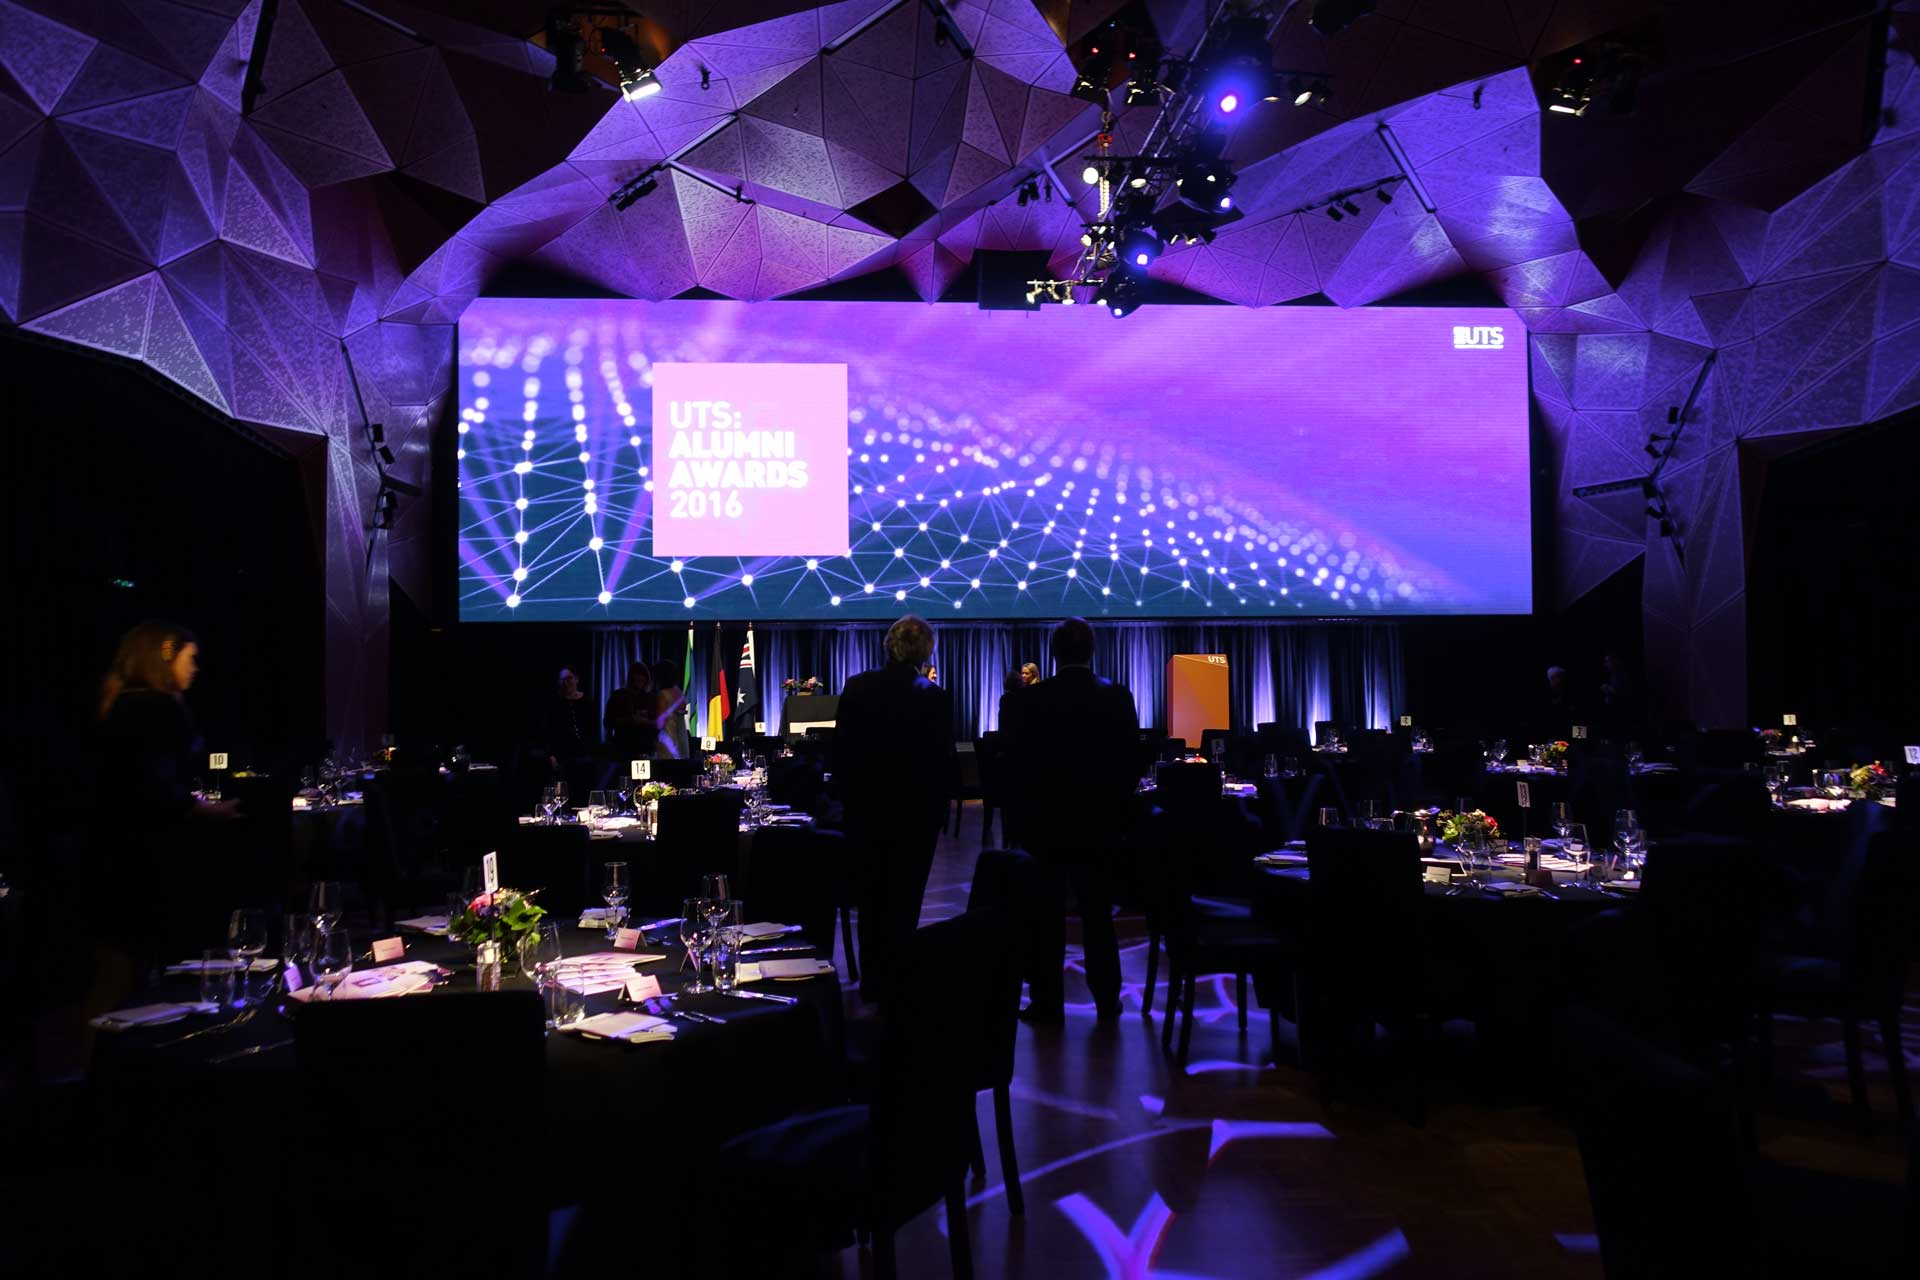 UTS Alumni Awards 2016